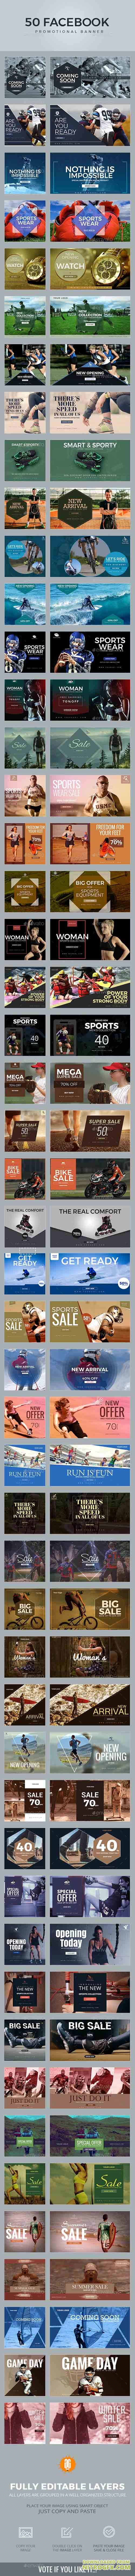 GraphicRiver - 100 Sport Facebook Banners 20690440